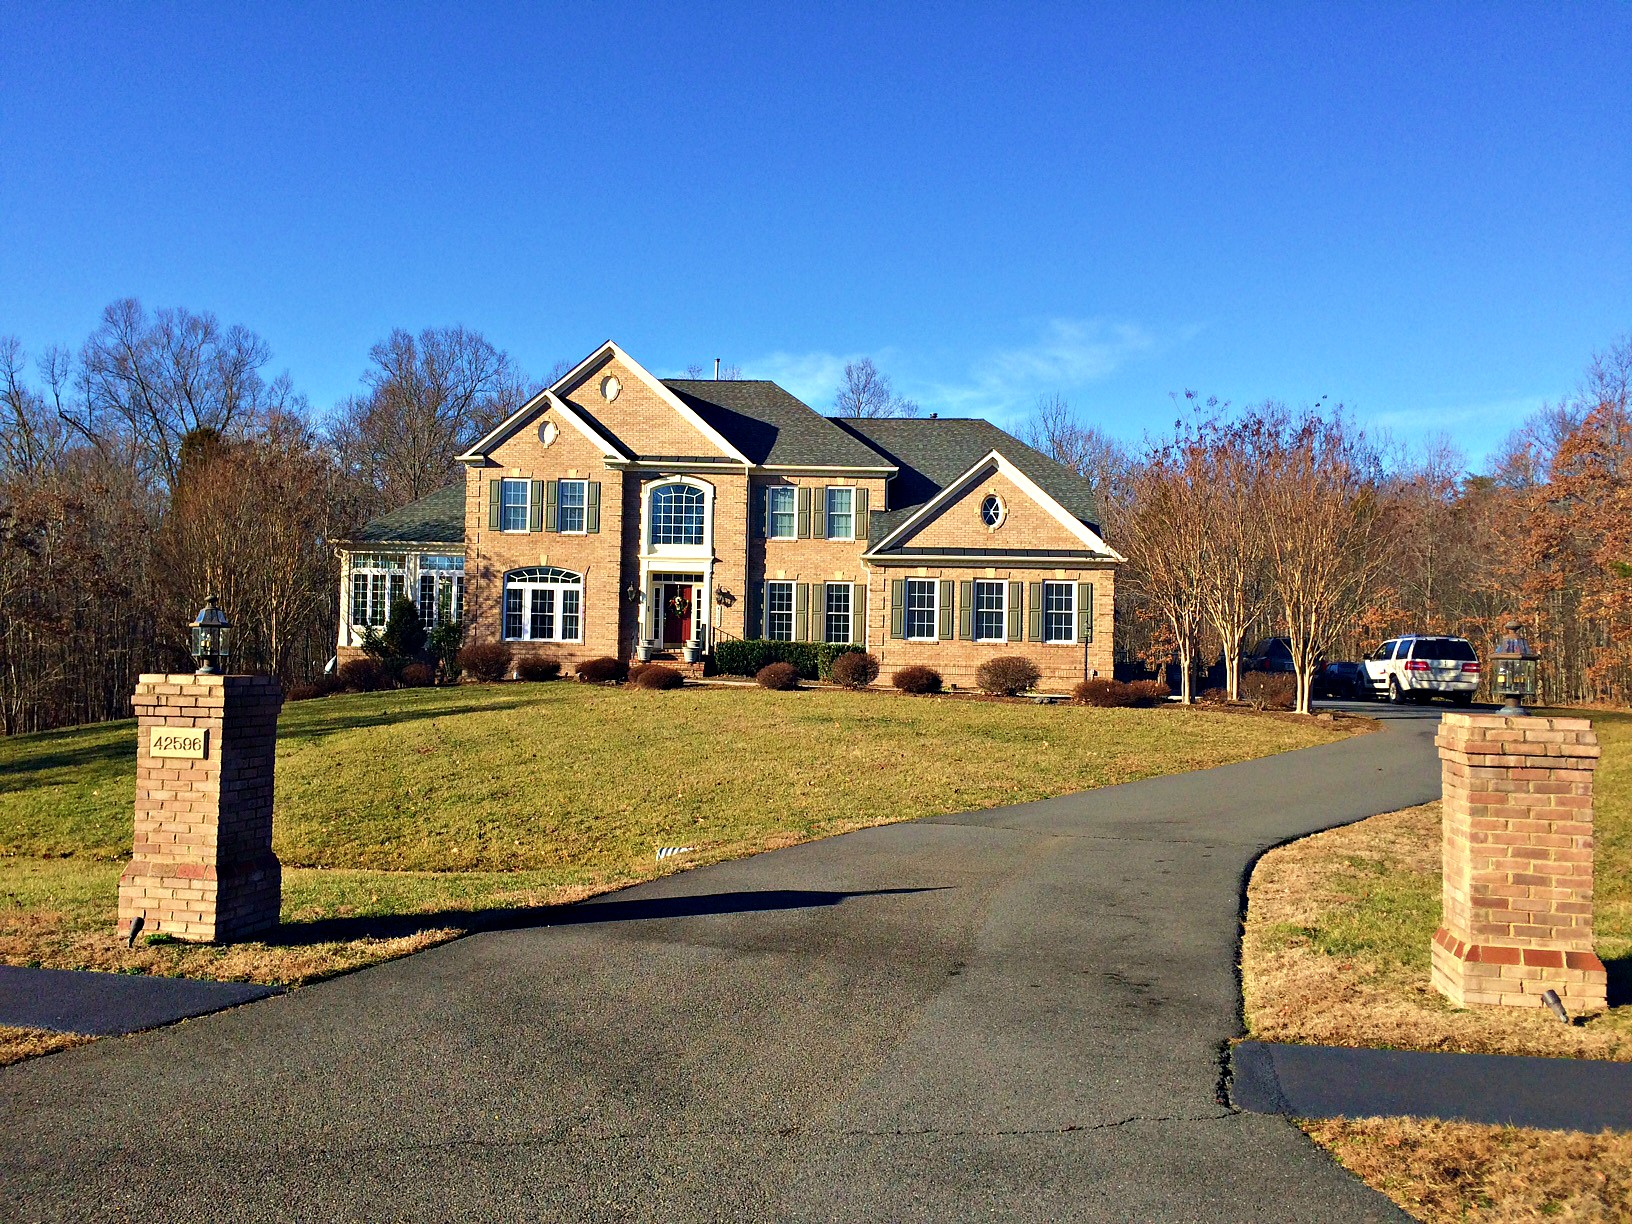 Brick colonial on 3 acres for under $1 million